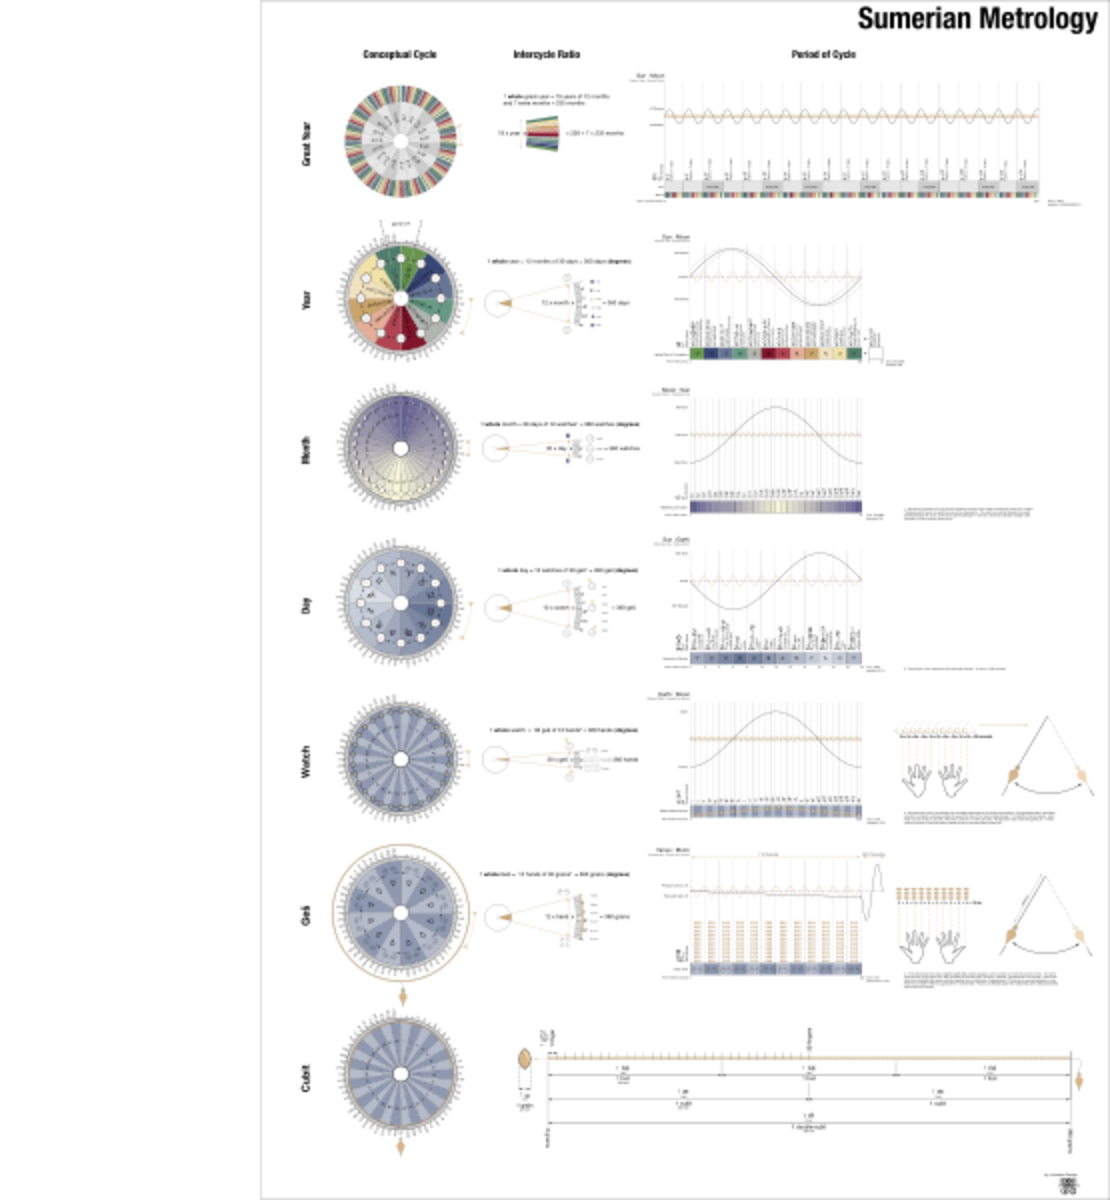 Sumerian metrology system